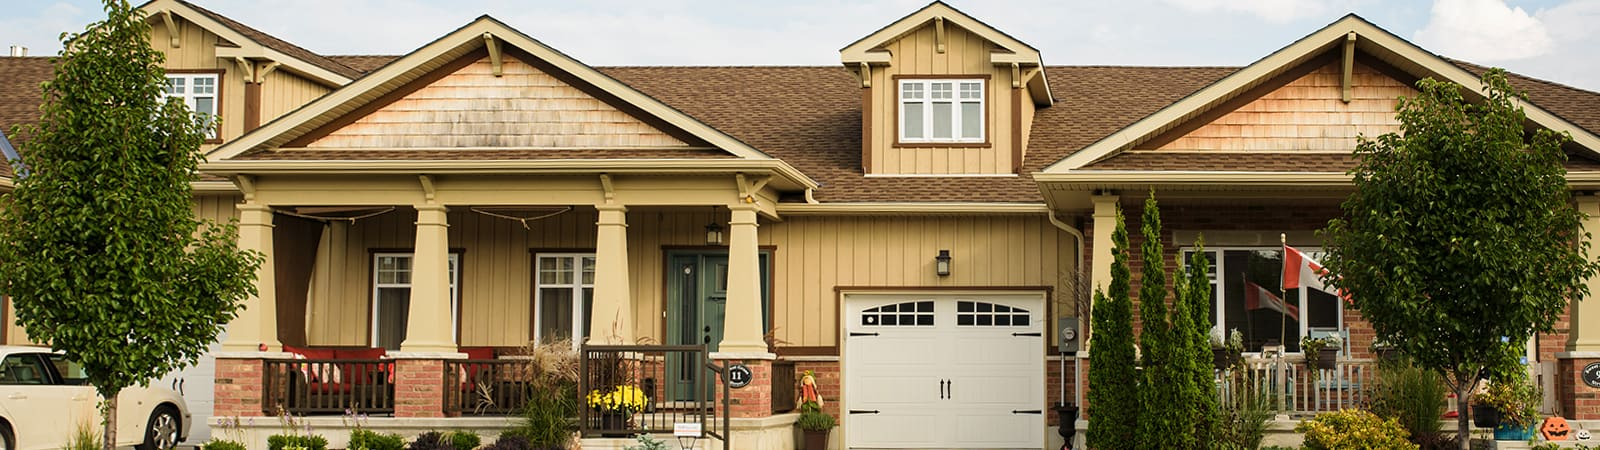 Townhomes in Bayfield, Ontario, by Durand Construction